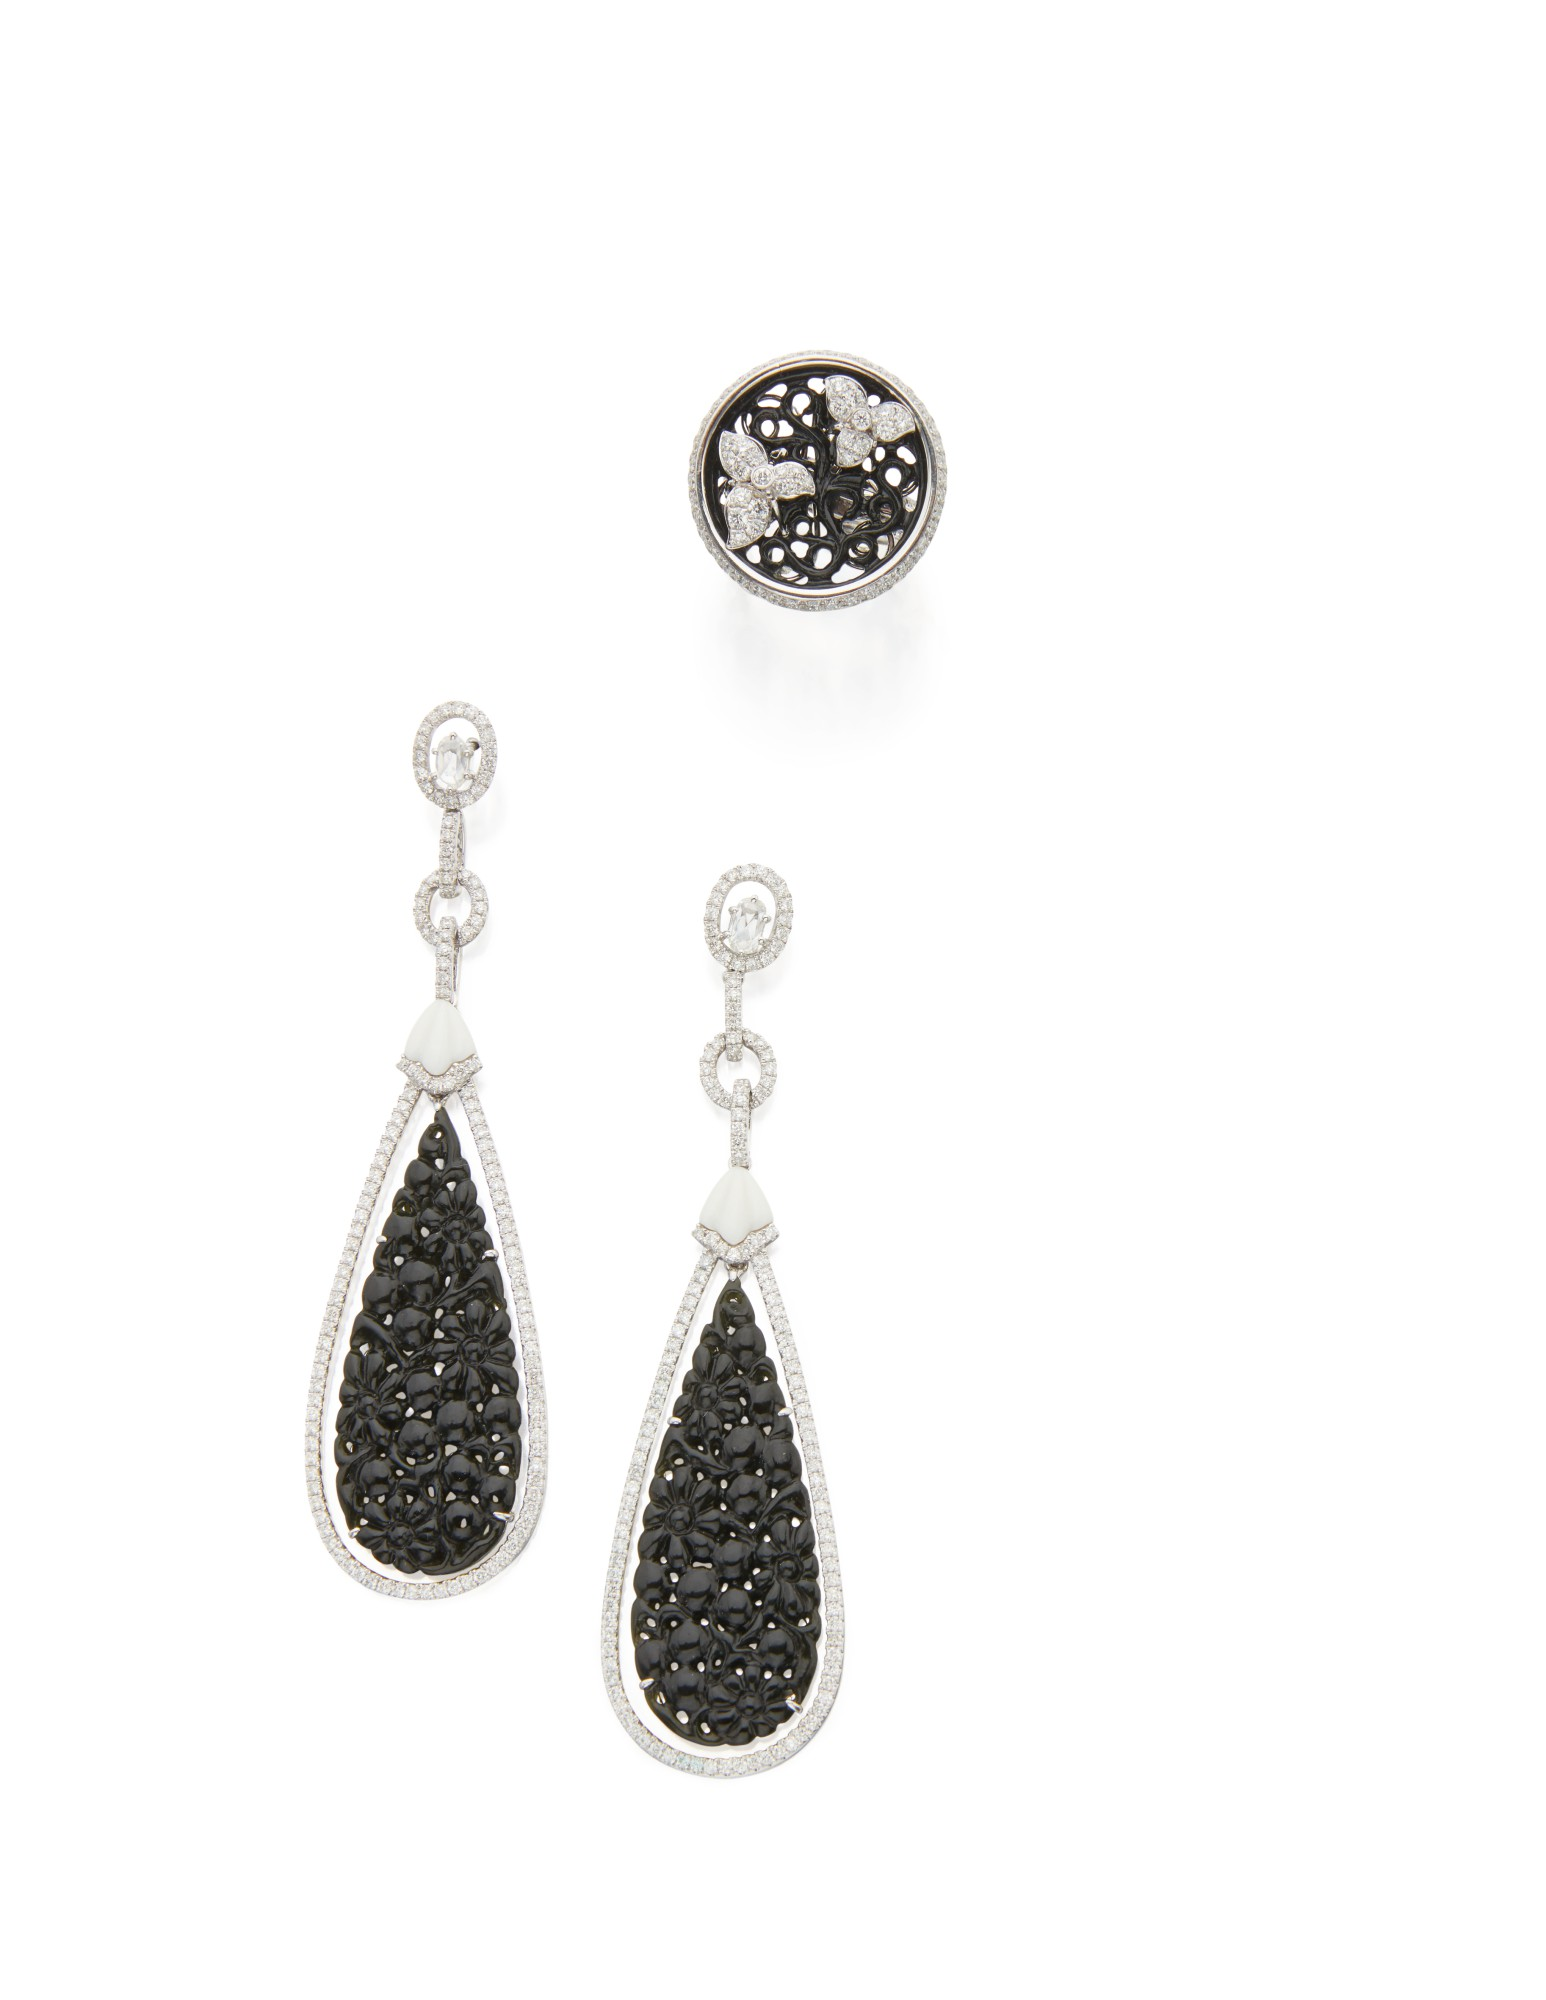 BLACK NEPHRITE AND DIAMOND RING AND PAIR OF PENDANT-EARRINGS